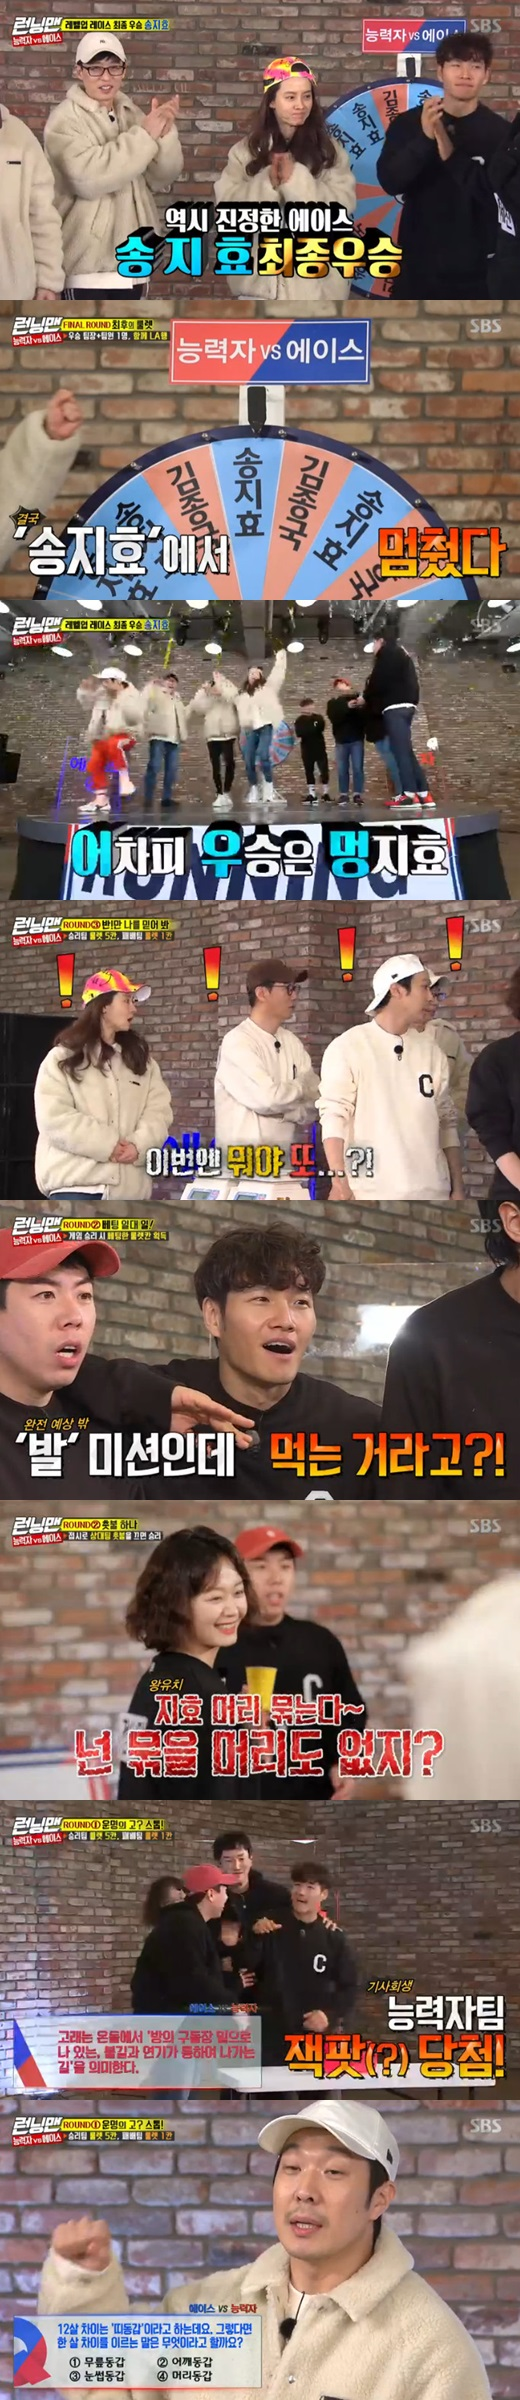 <p>10 days afternoon broadcast of SBS Running Manis the ability to let Kim Jong-kook is about the ACE Song Ji-hyo of the prize to cross the Battle this was painted.</p><p>With Kim Jong-kook and Song Ji-hyo, respectively, a, Togethercard to have togetheras if the prize money is divided, A, if only one person of German stockone. Kim Jong-kook and Song Ji-hyo is each Ais selected and Battle through one person in the whole prize giving.</p><p>Kim Jong-kook LA and want to goand the past LA trip again want to feel said. Song Ji-hyo also LA travel for say, a prize gun Battle this started.</p><p>Two people Battle at this handsome man the other member to point to LA to the way it was. The one that Kim Jong-kook and Song Ji-hyos recent Love Line which one of the Pig books as a draw or what? Smell.Called doubt. This tour also pod cuddling!La and Kim Jong-kook, Song Ji-hyo of two people who love to cheer.</p><p>1 round of Destiny? Stop!In the ability to let Kim Jong-kook team last issue through 15 for 10 as the reversal was successful. This is Song Ji-hyo team of perfectshot and win that the unpredictability of the situation fell in. But Kim Jong-kook team reversed from Round 1 victory.</p><p>Round 2 of the bet oneping-pong ball games, Candle Games, hands and bread to eat as diverse as you progress through the game. ACE Team roulette 9 Khan, mighty team 3 Khan to get the latest updates of the 3rd round is in progress. 3 rounds of the stuff half exactly to teach the game.</p><p>Song Ji-hyo and Kim Jong-kooks last Battle in the Kim Jong-kook is baked eggs in half, carefully go up, and the 20g, 20g with exactly half the gala, she surprised everyone. Eventually the ACE Team won the roulette American are 10, 8 was.</p><p>ACE for the skills of Battle, the last gate is the last of the roulette. Roulette American 10 and 8 representing the situation in roulette is Song Ji-hyo in stopped. Song Ji-hyo team member of the who and go was not disclosed.</p>